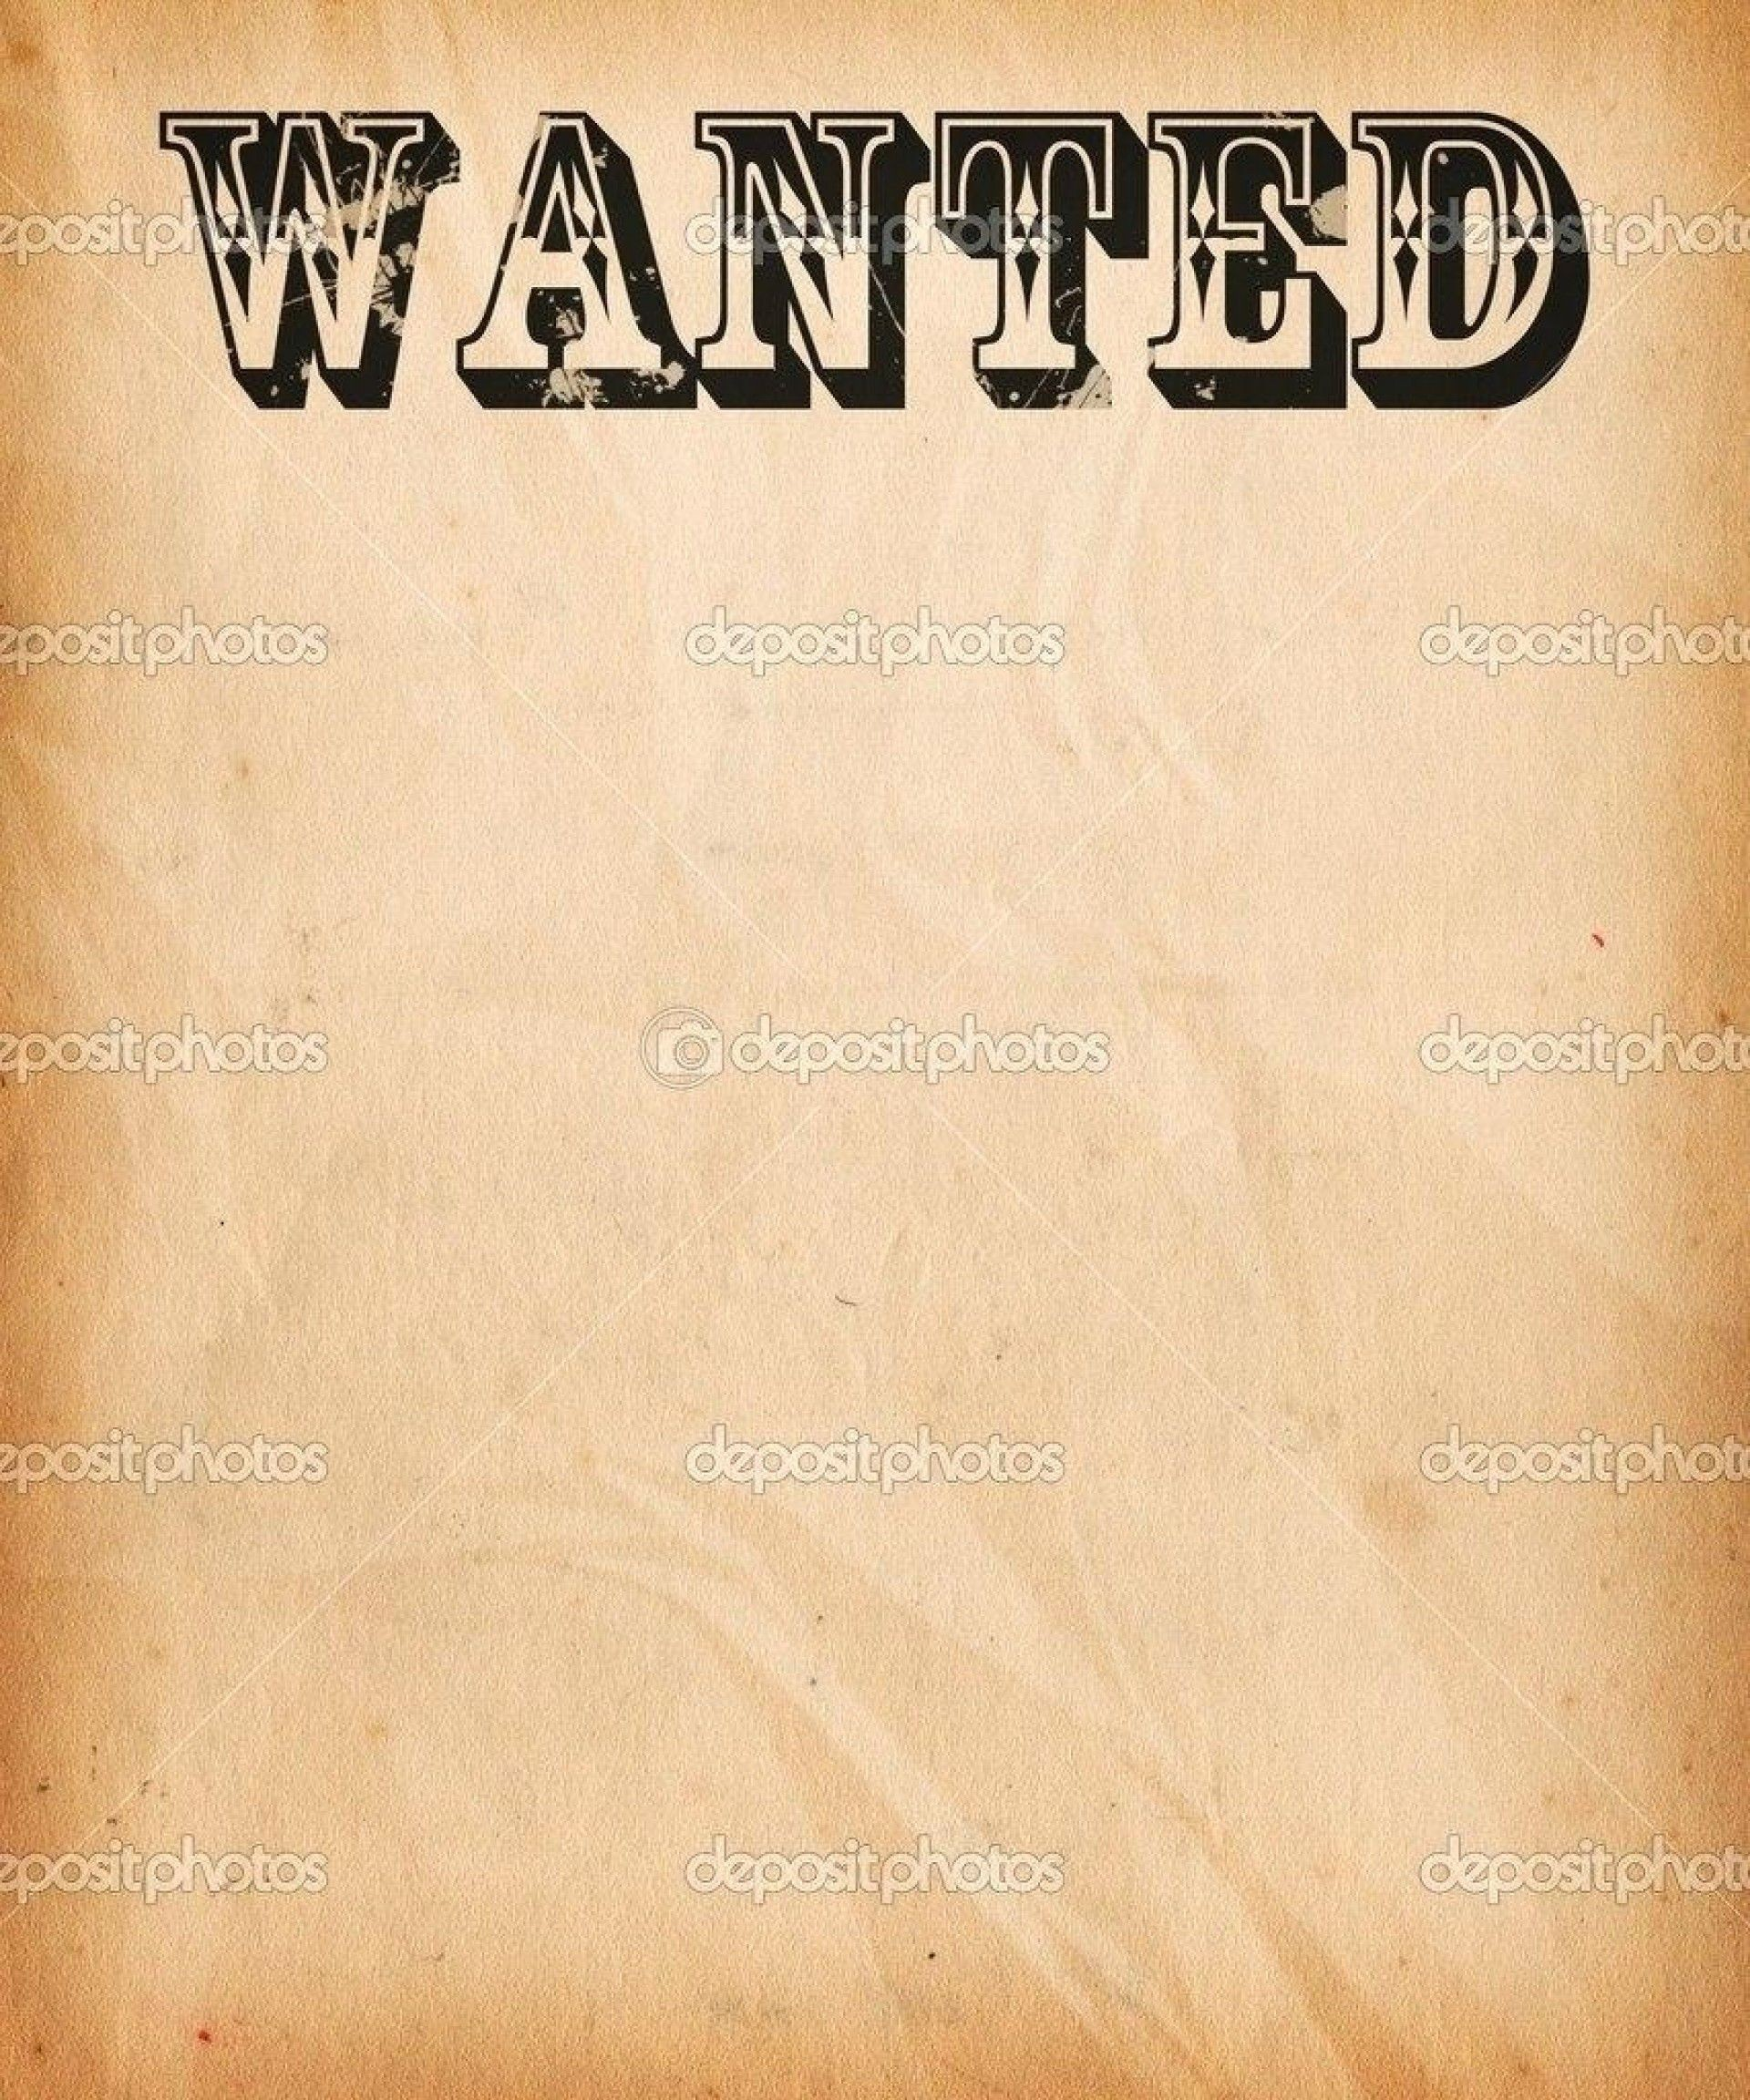 002 Wonderful Wanted Poster Template Free Printable Concept  Most1920